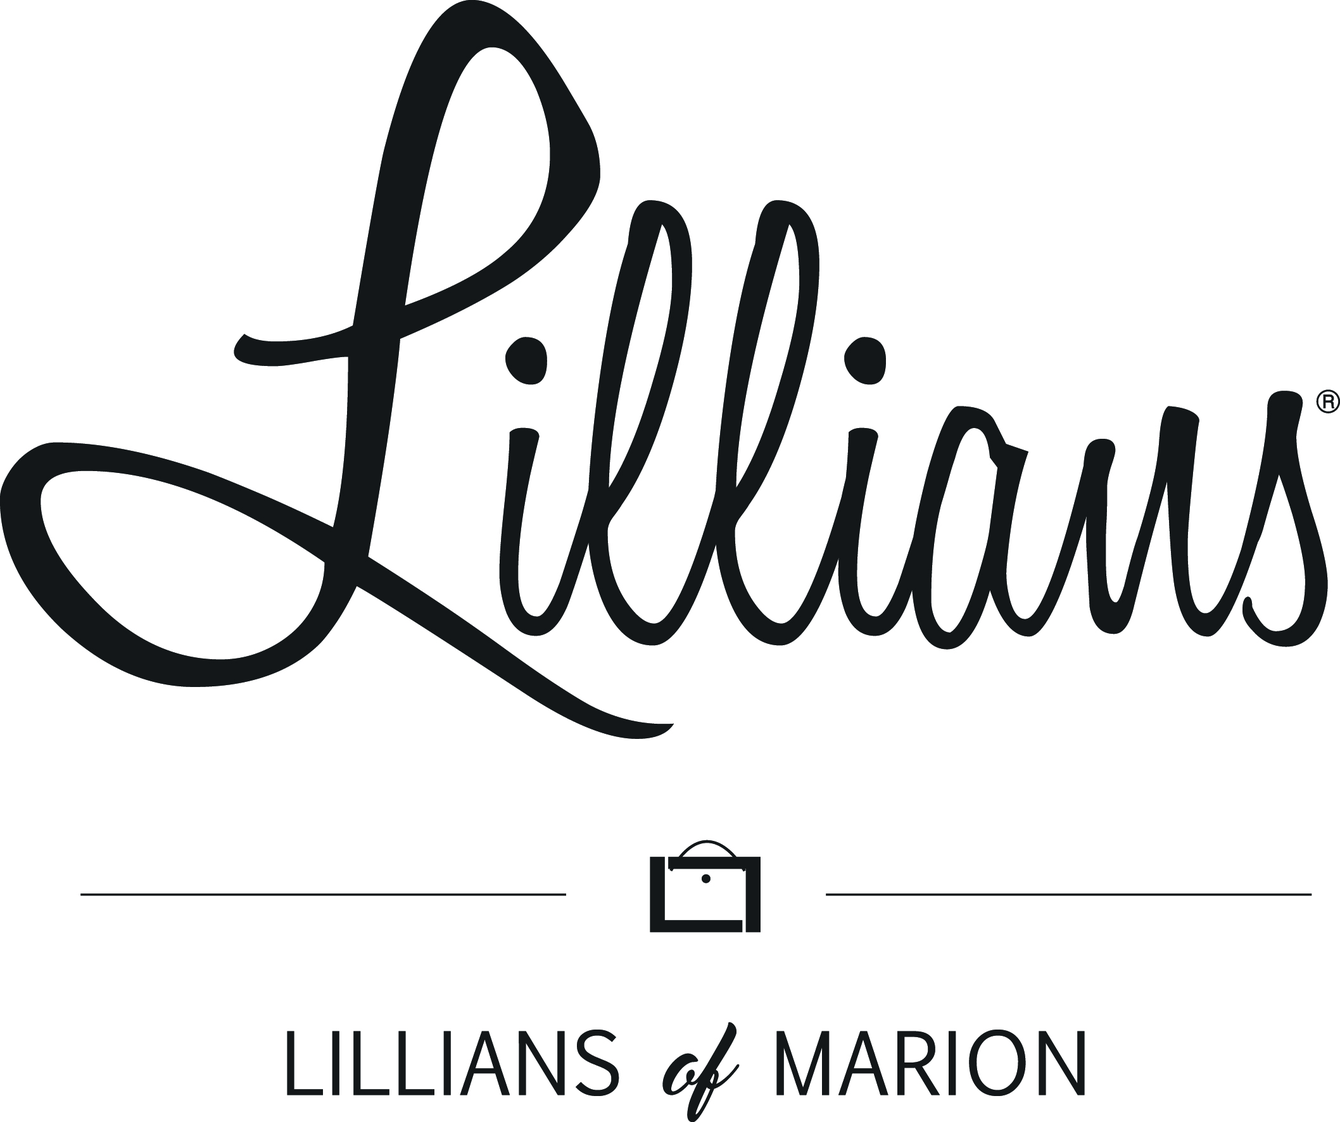 Lillians of Marion